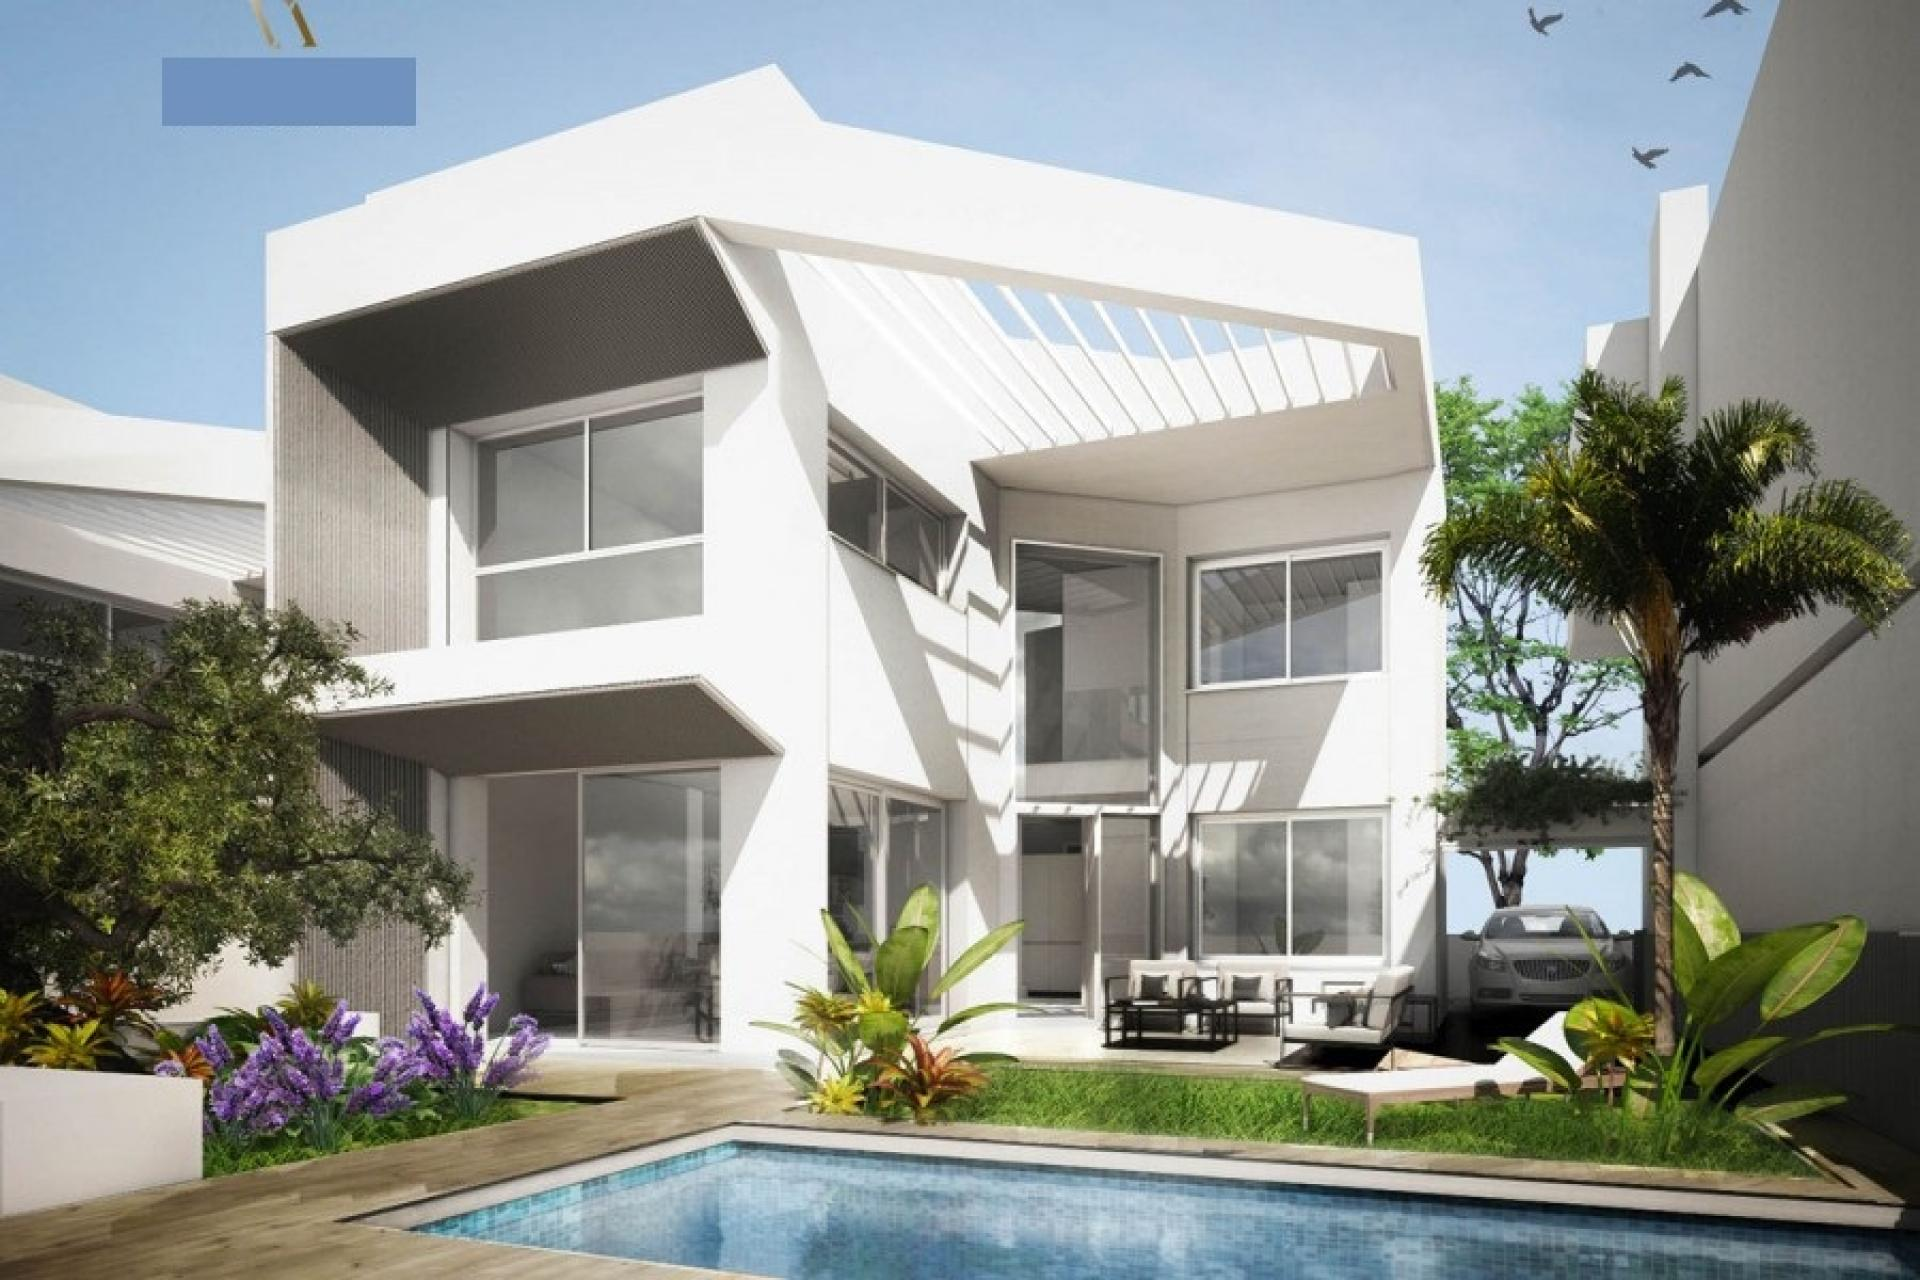 For Sale: Villa in Torrevieja Beds: 4 Baths: 3 Price: 475,000€